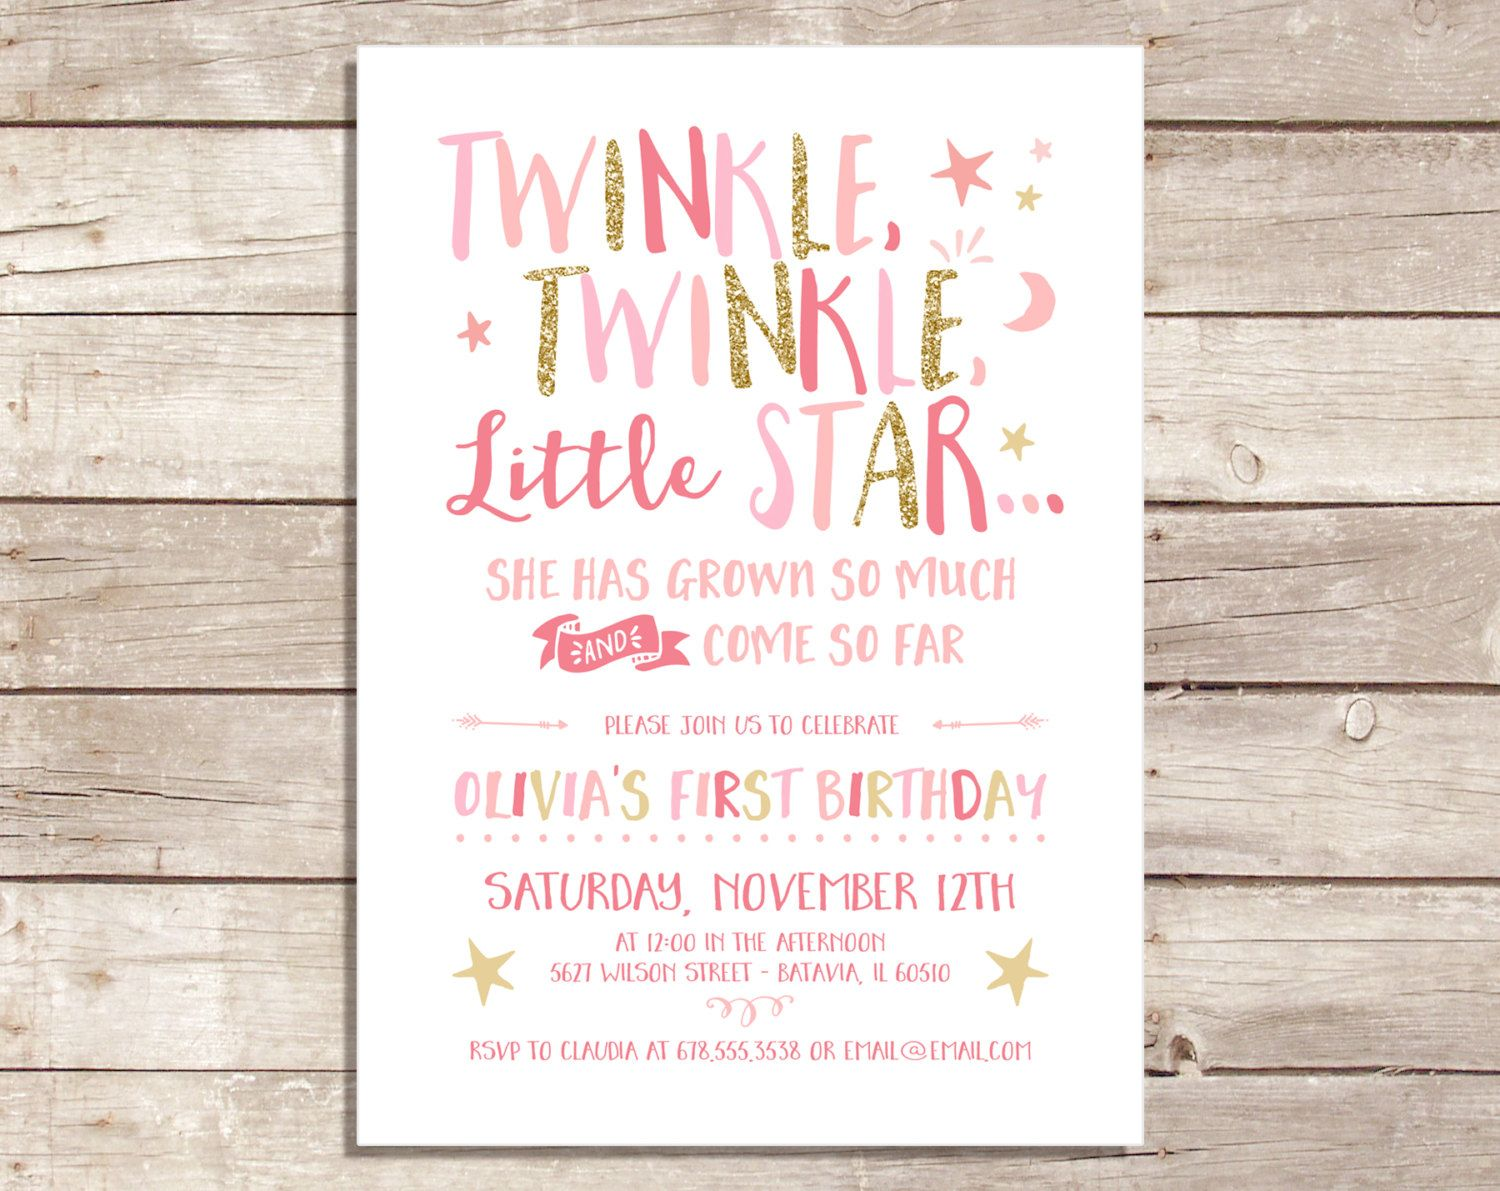 Printable twinkle twinkle little star invitation pink and gold